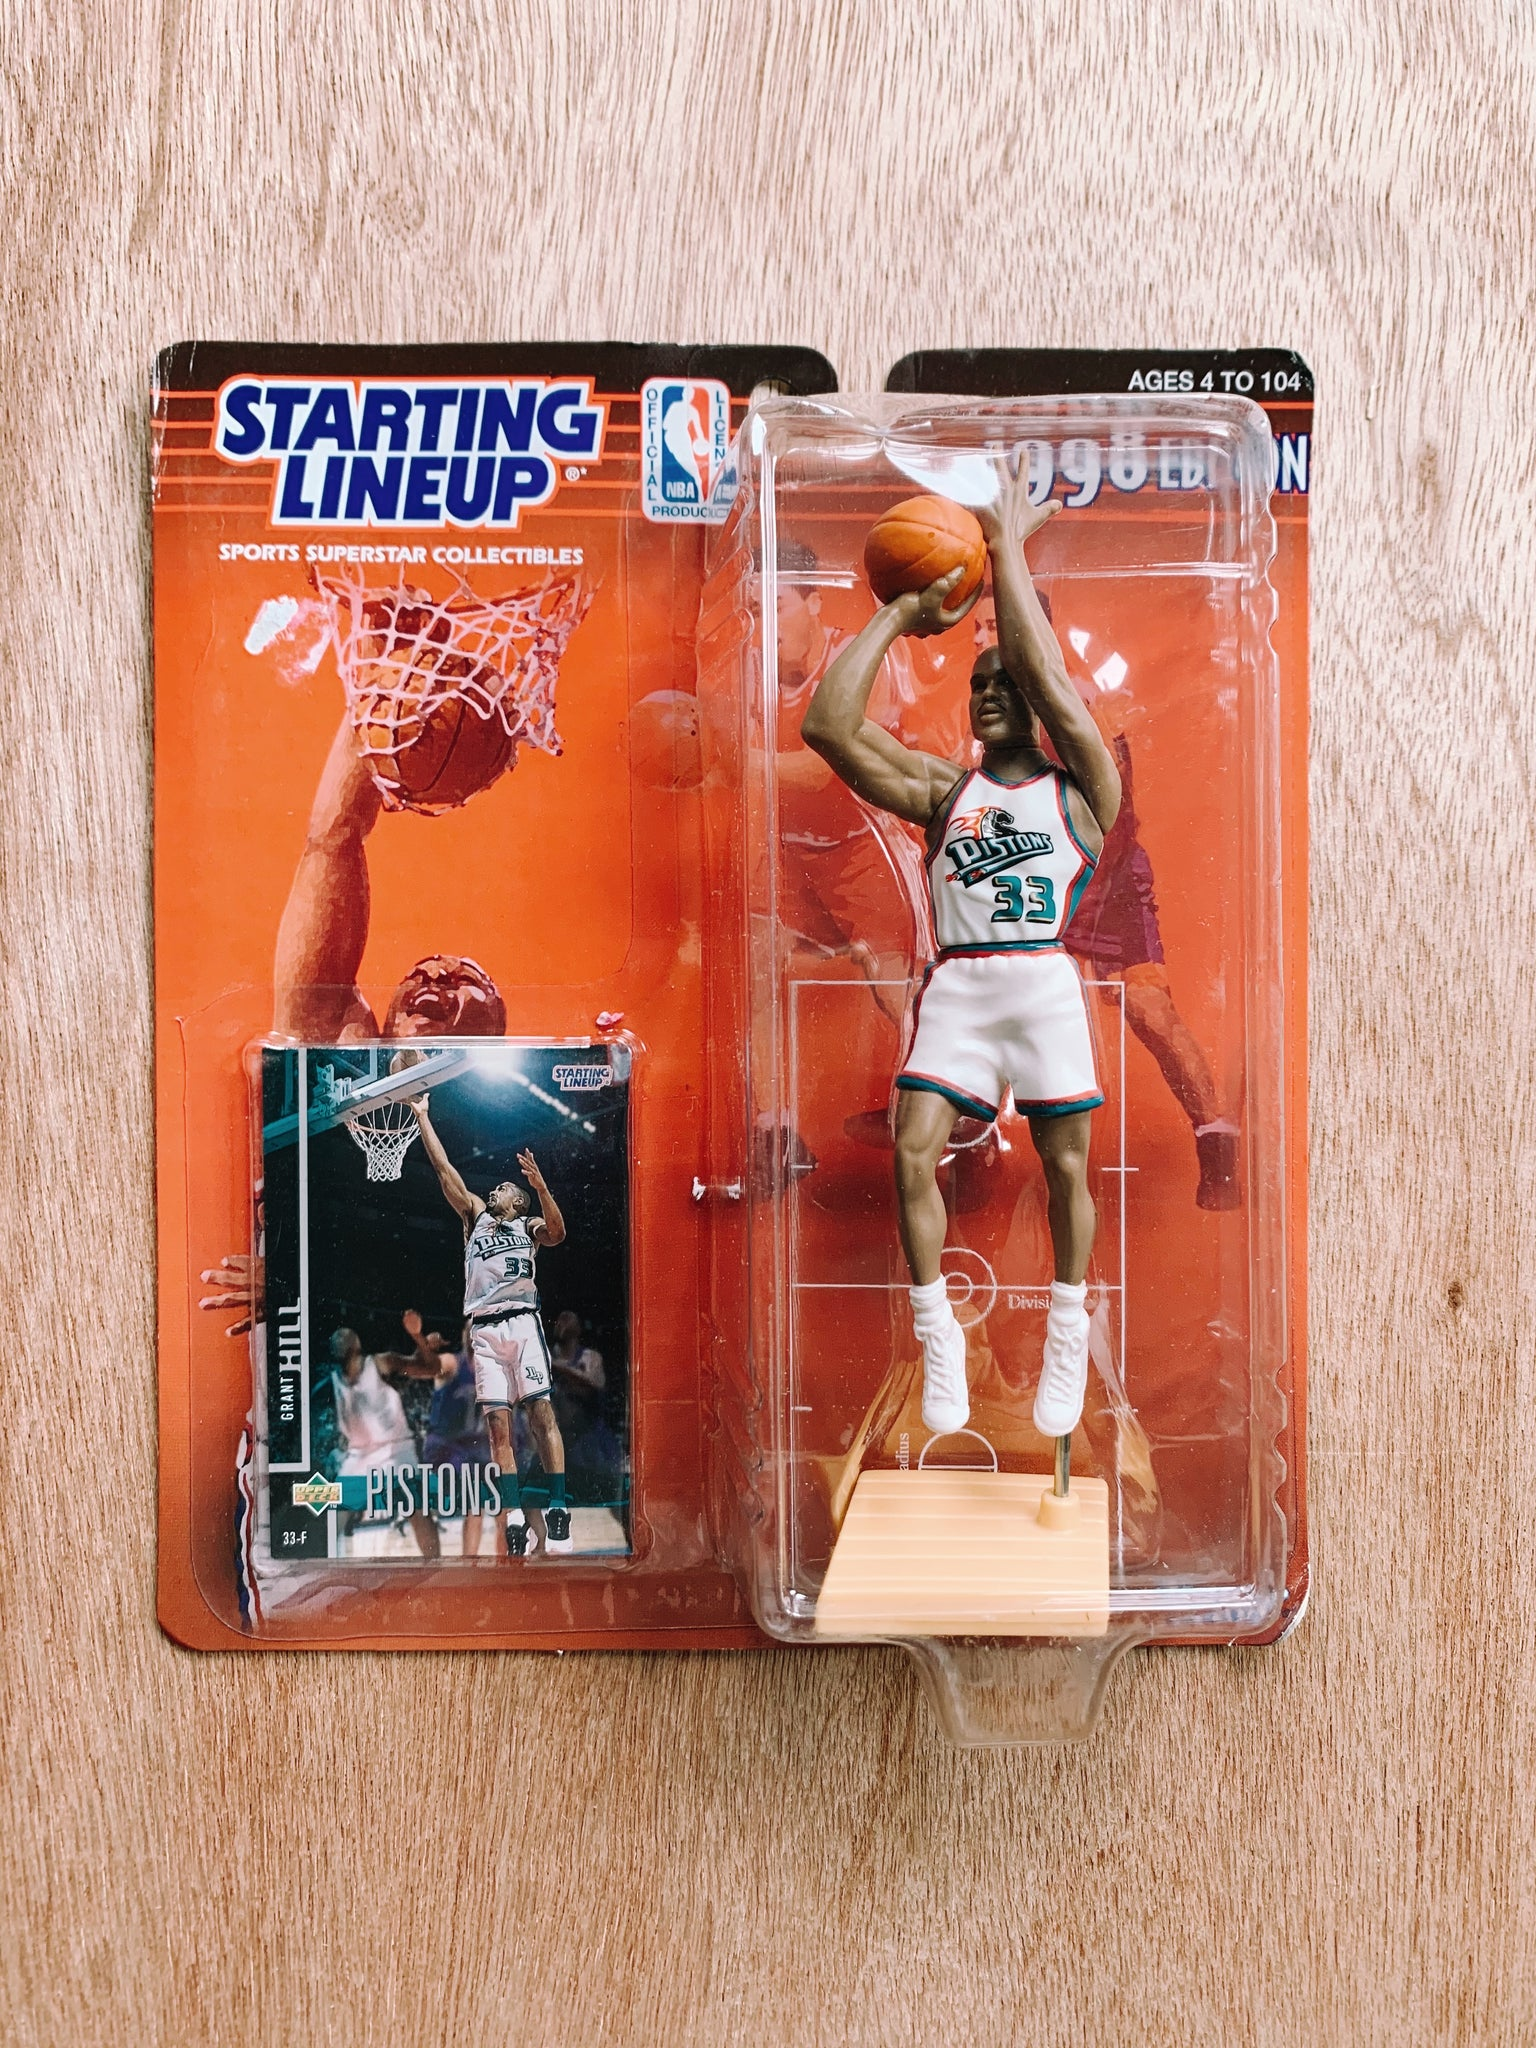 Vintage Starting Lineup Toy: Grant Hill (1990's)